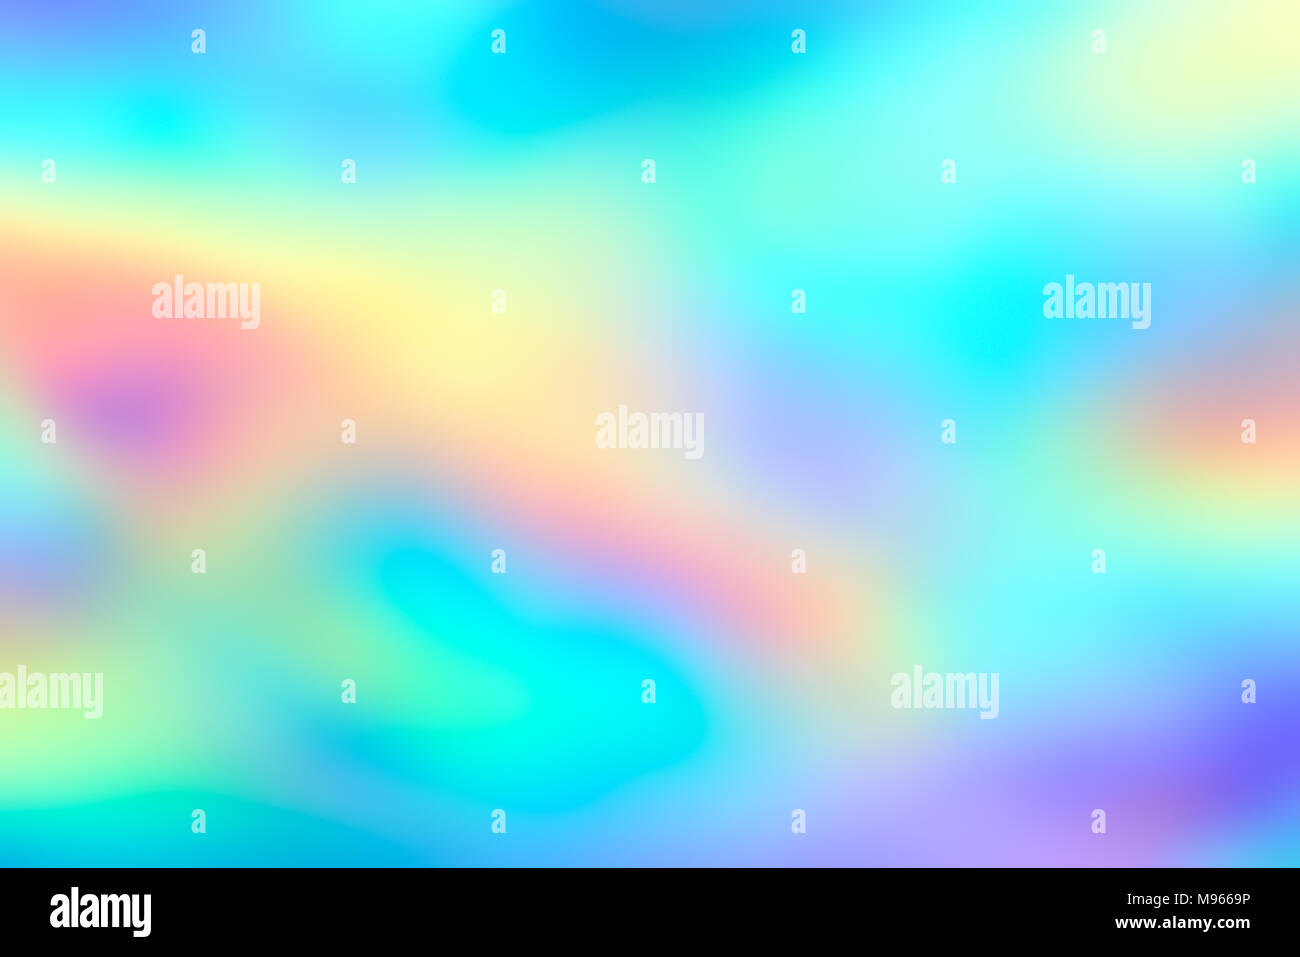 Blur holographic neon foil background. Abstract holographic background. Design template. - Stock Image